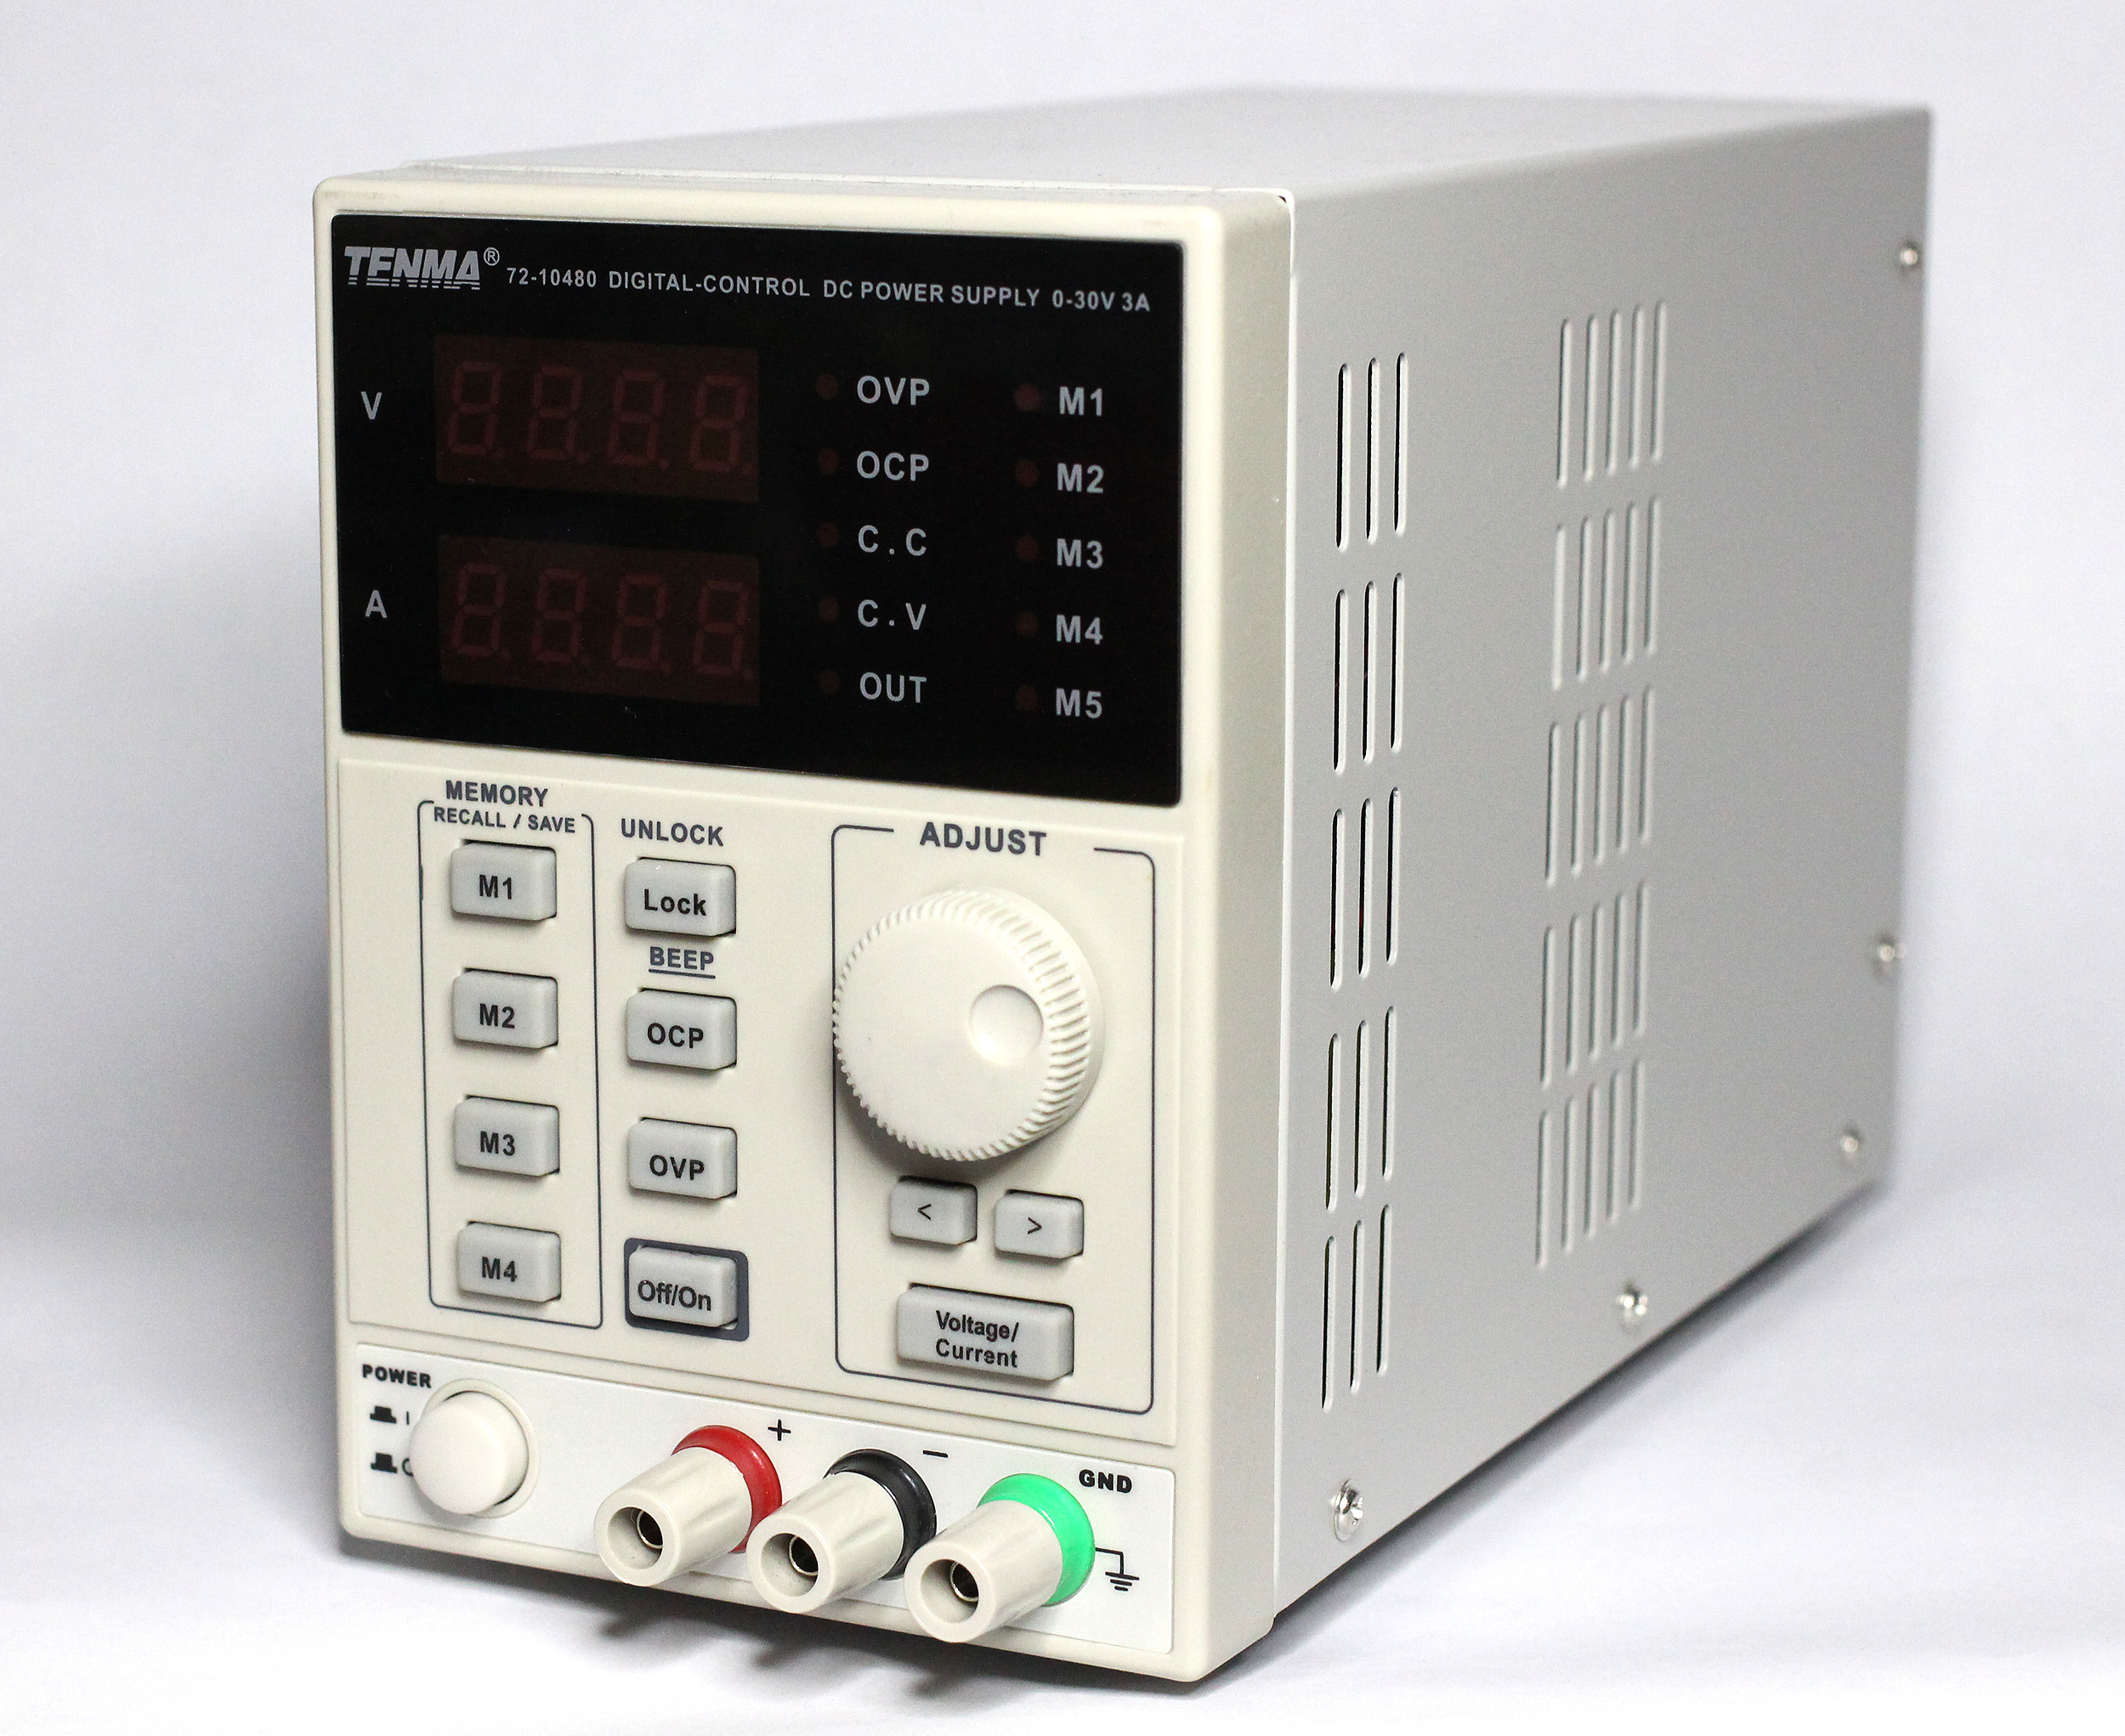 Tenma 72 10480 Power Supply Review Ee Constant Current Load For Testing First Impression